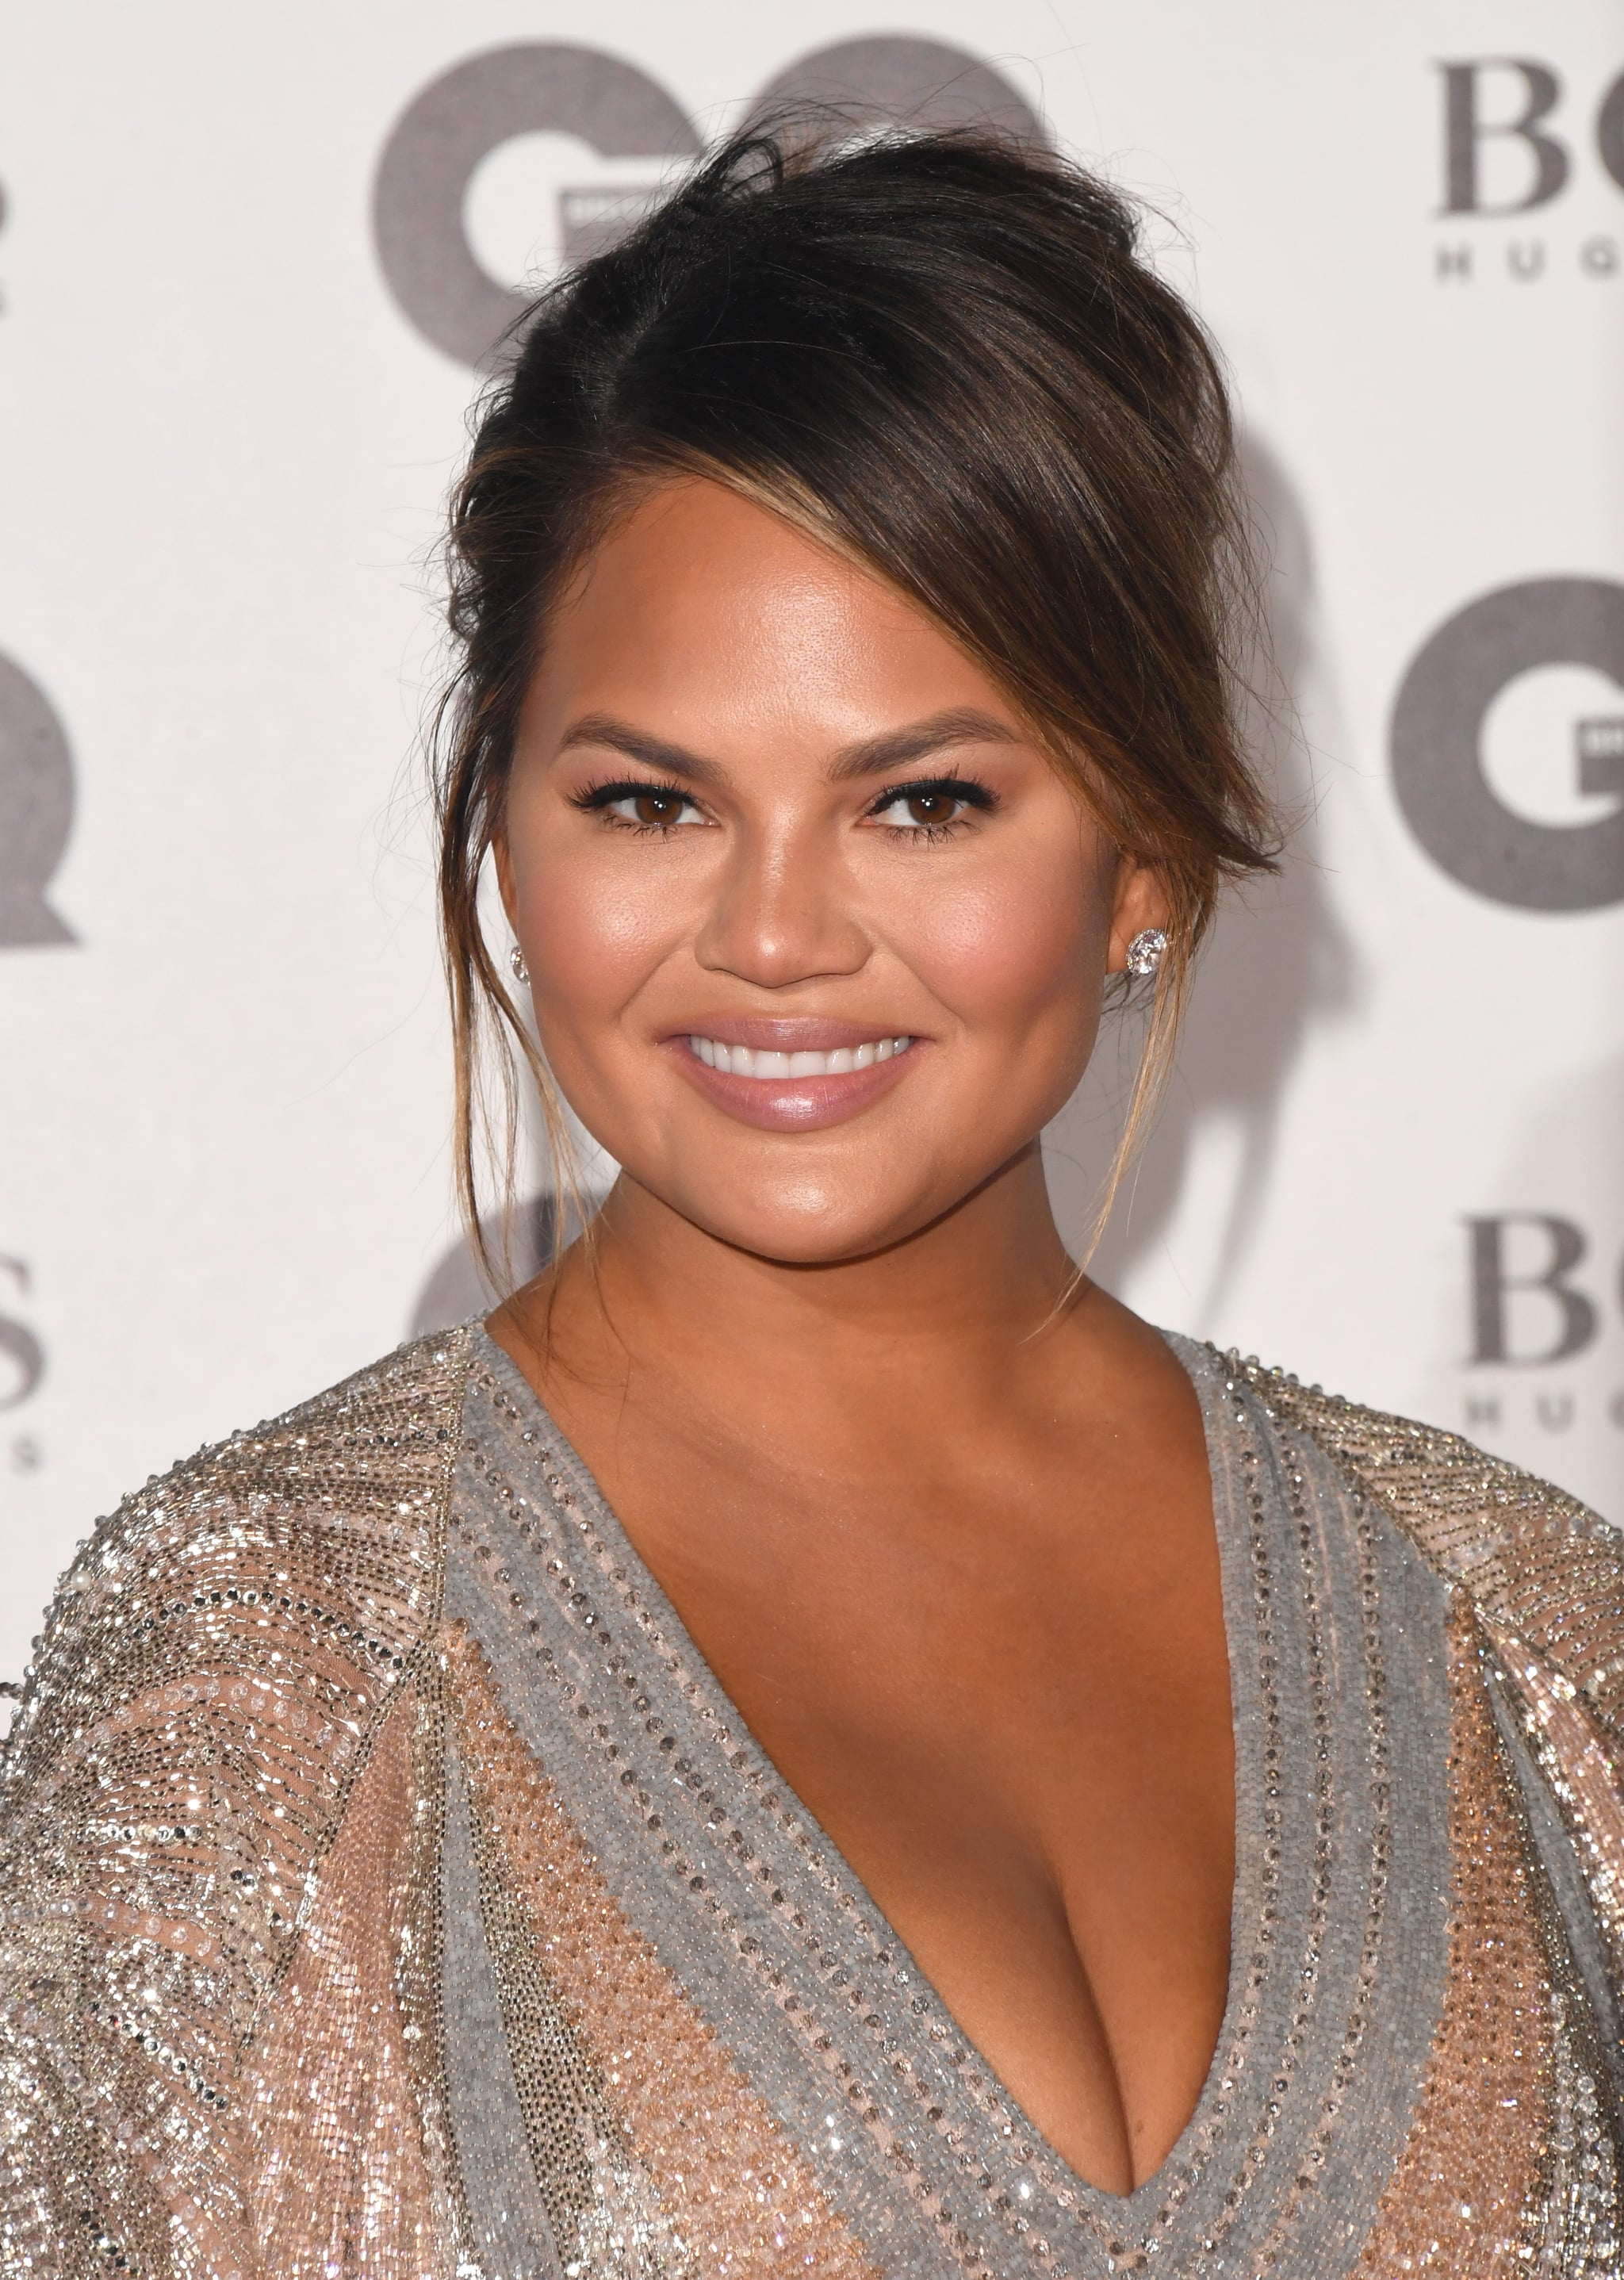 LONDON, ENGLAND - SEPTEMBER 05:  Chrissy Teigen attends the GQ Men of the Year awards at the Tate Modern on September 5, 2018 in London, England.  (Photo by Stuart C. Wilson/Getty Images)